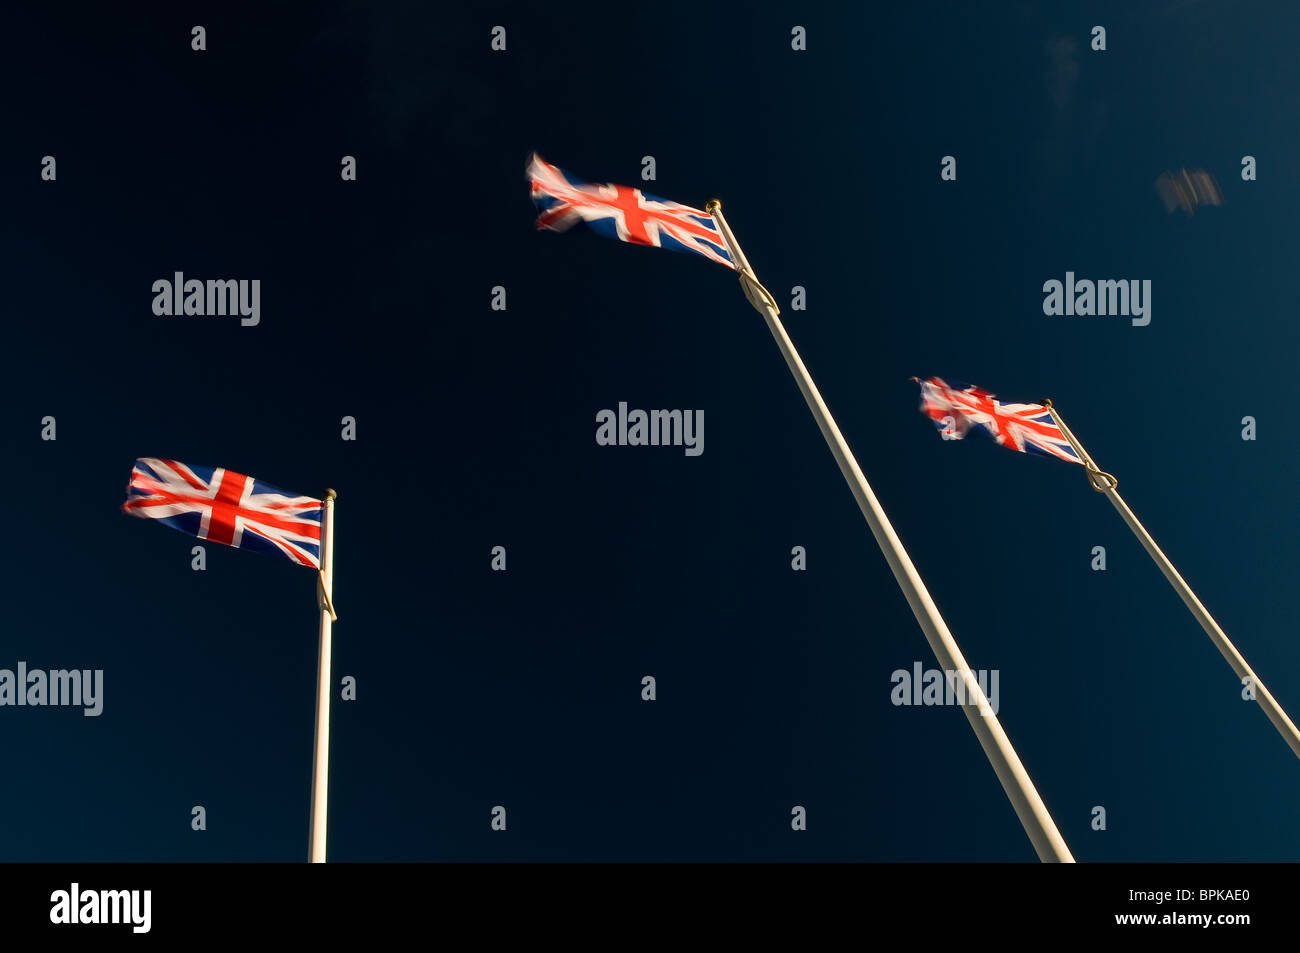 Three Union Jack flags fluttering in the breeze - Stock Image